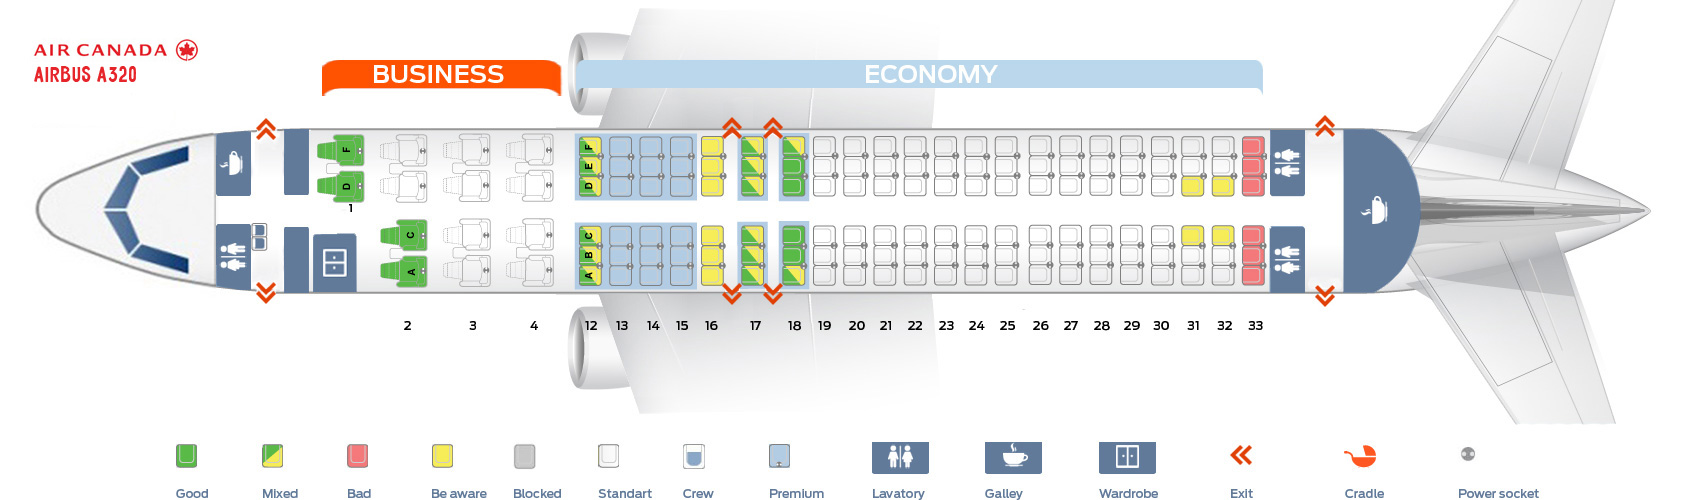 Seat map Air Canada Airbus A320